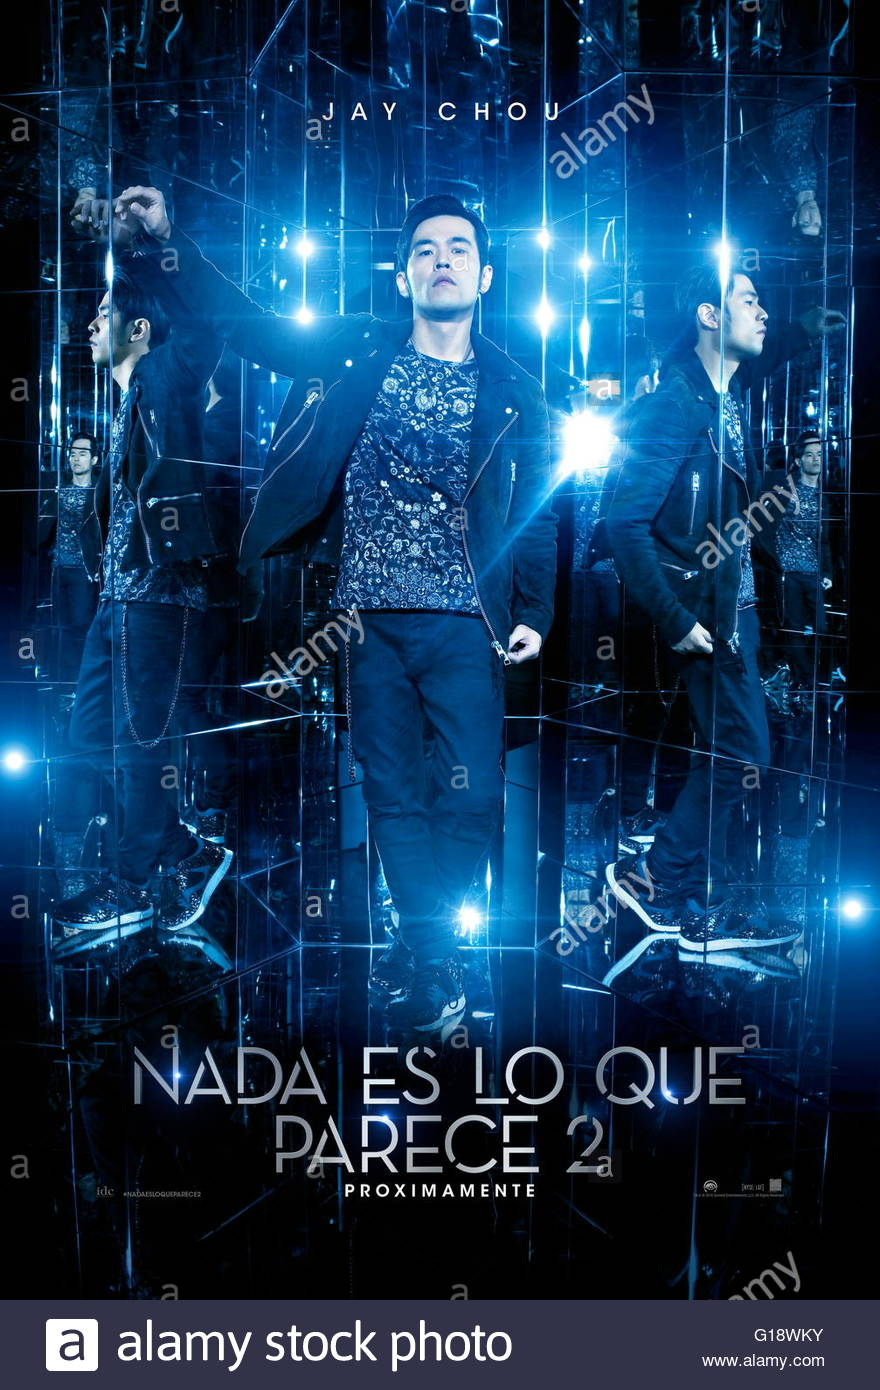 Now you see me spanish online full movie free hd download